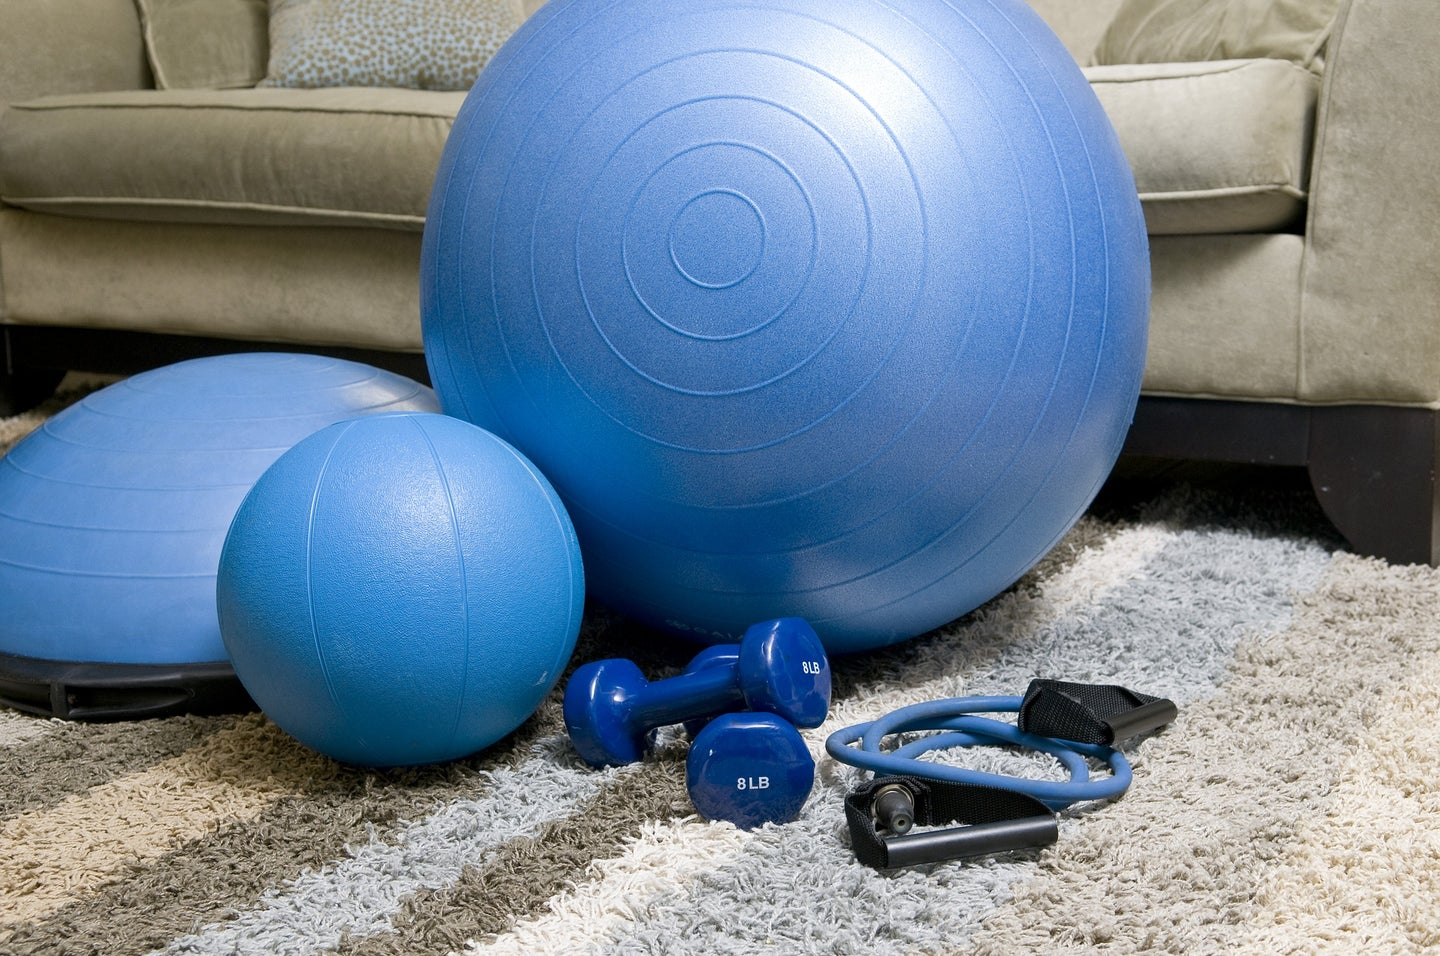 blue hand weights and other exercise equipment on a tan carpet